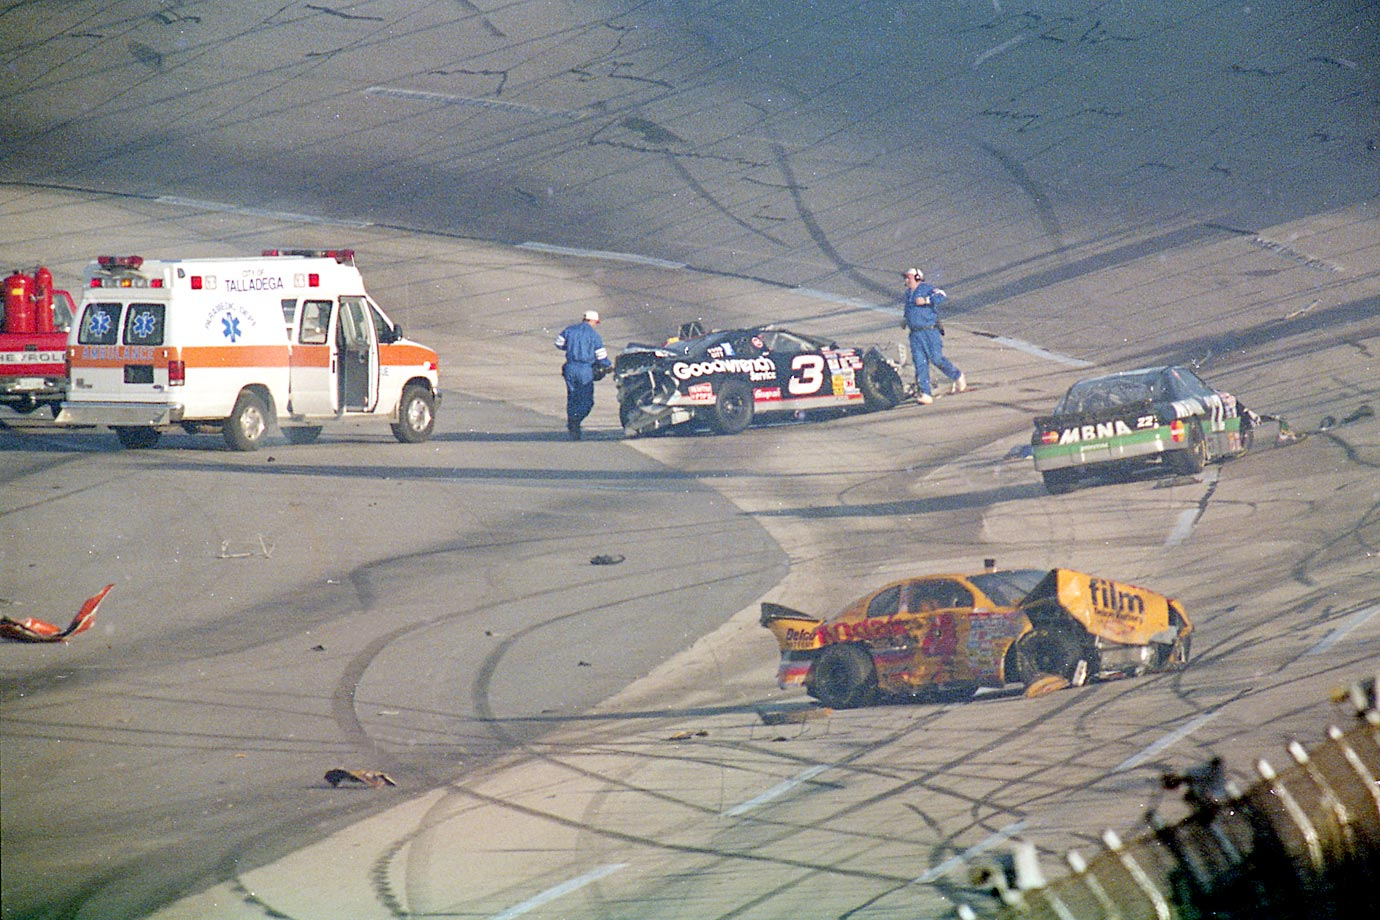 This chain-reaction crash starts when Mark Martin drifted up the track and hit Jeff Gordon, sending Martin's car spinning down the track, where it hit Ricky Craven. Dale Earnhardt gets involved and hits the wall hard, breaking his collar bone.  It marks one of two large wrecks during the race.